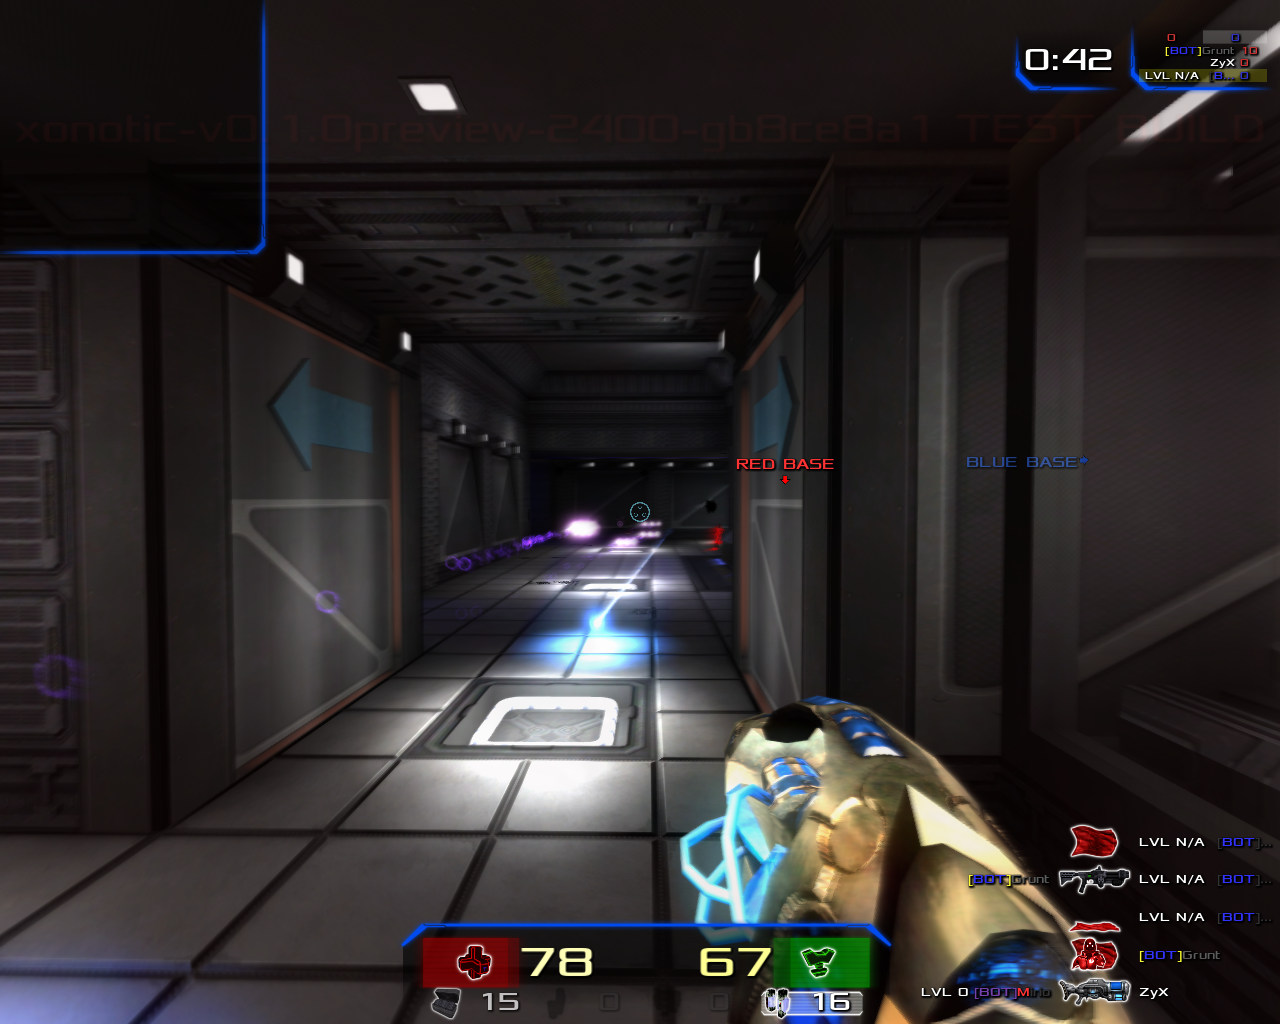 Free alternative games: Quake III: Arena free alternative or clone